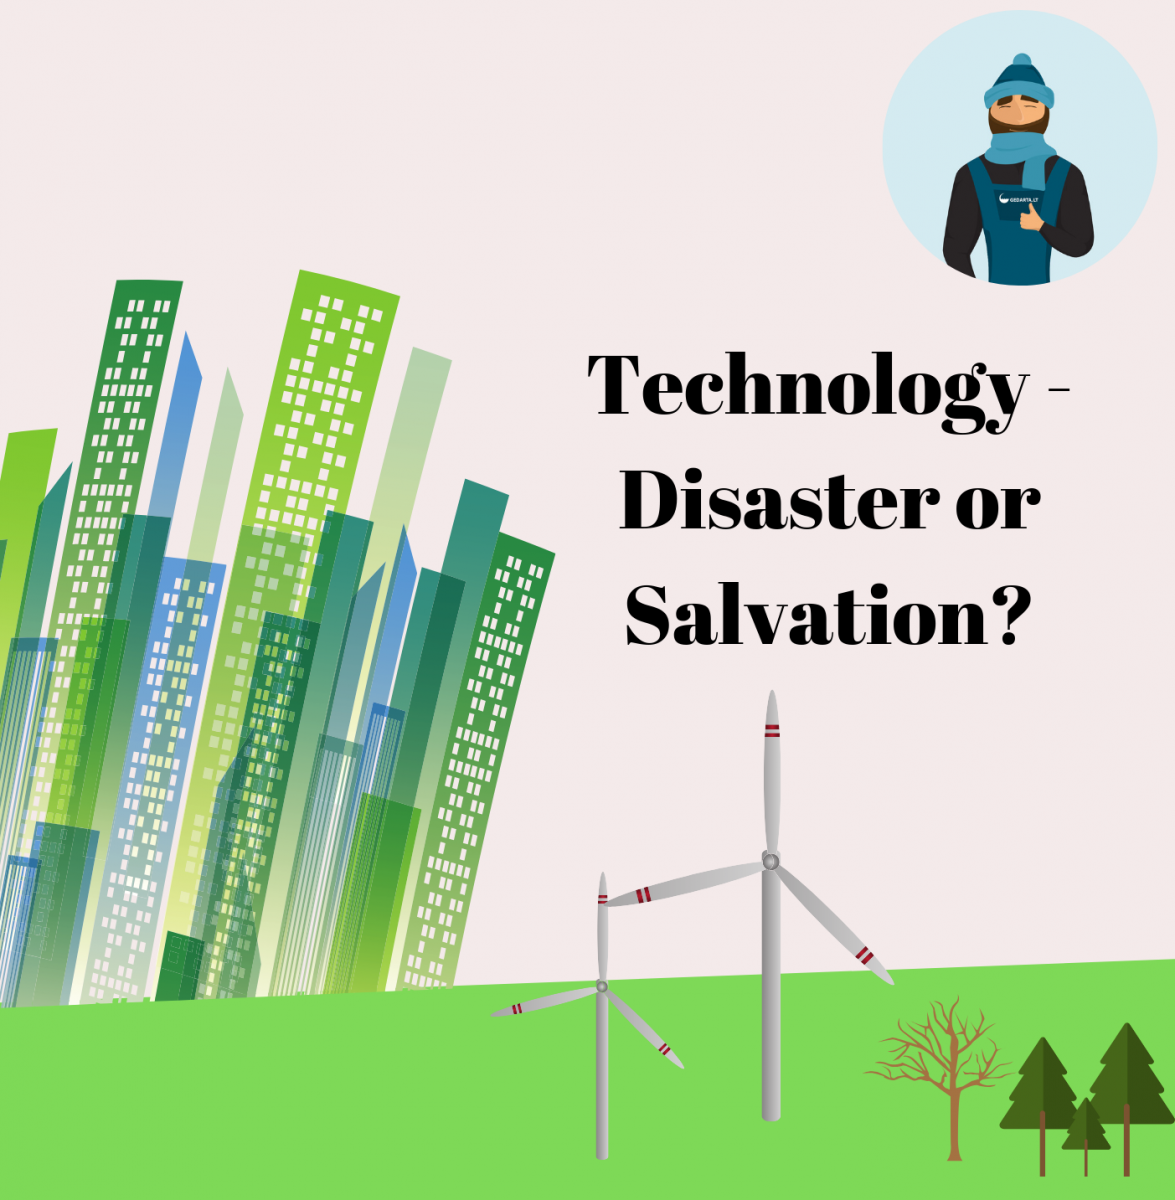 Technology - Disaster or Salvation?